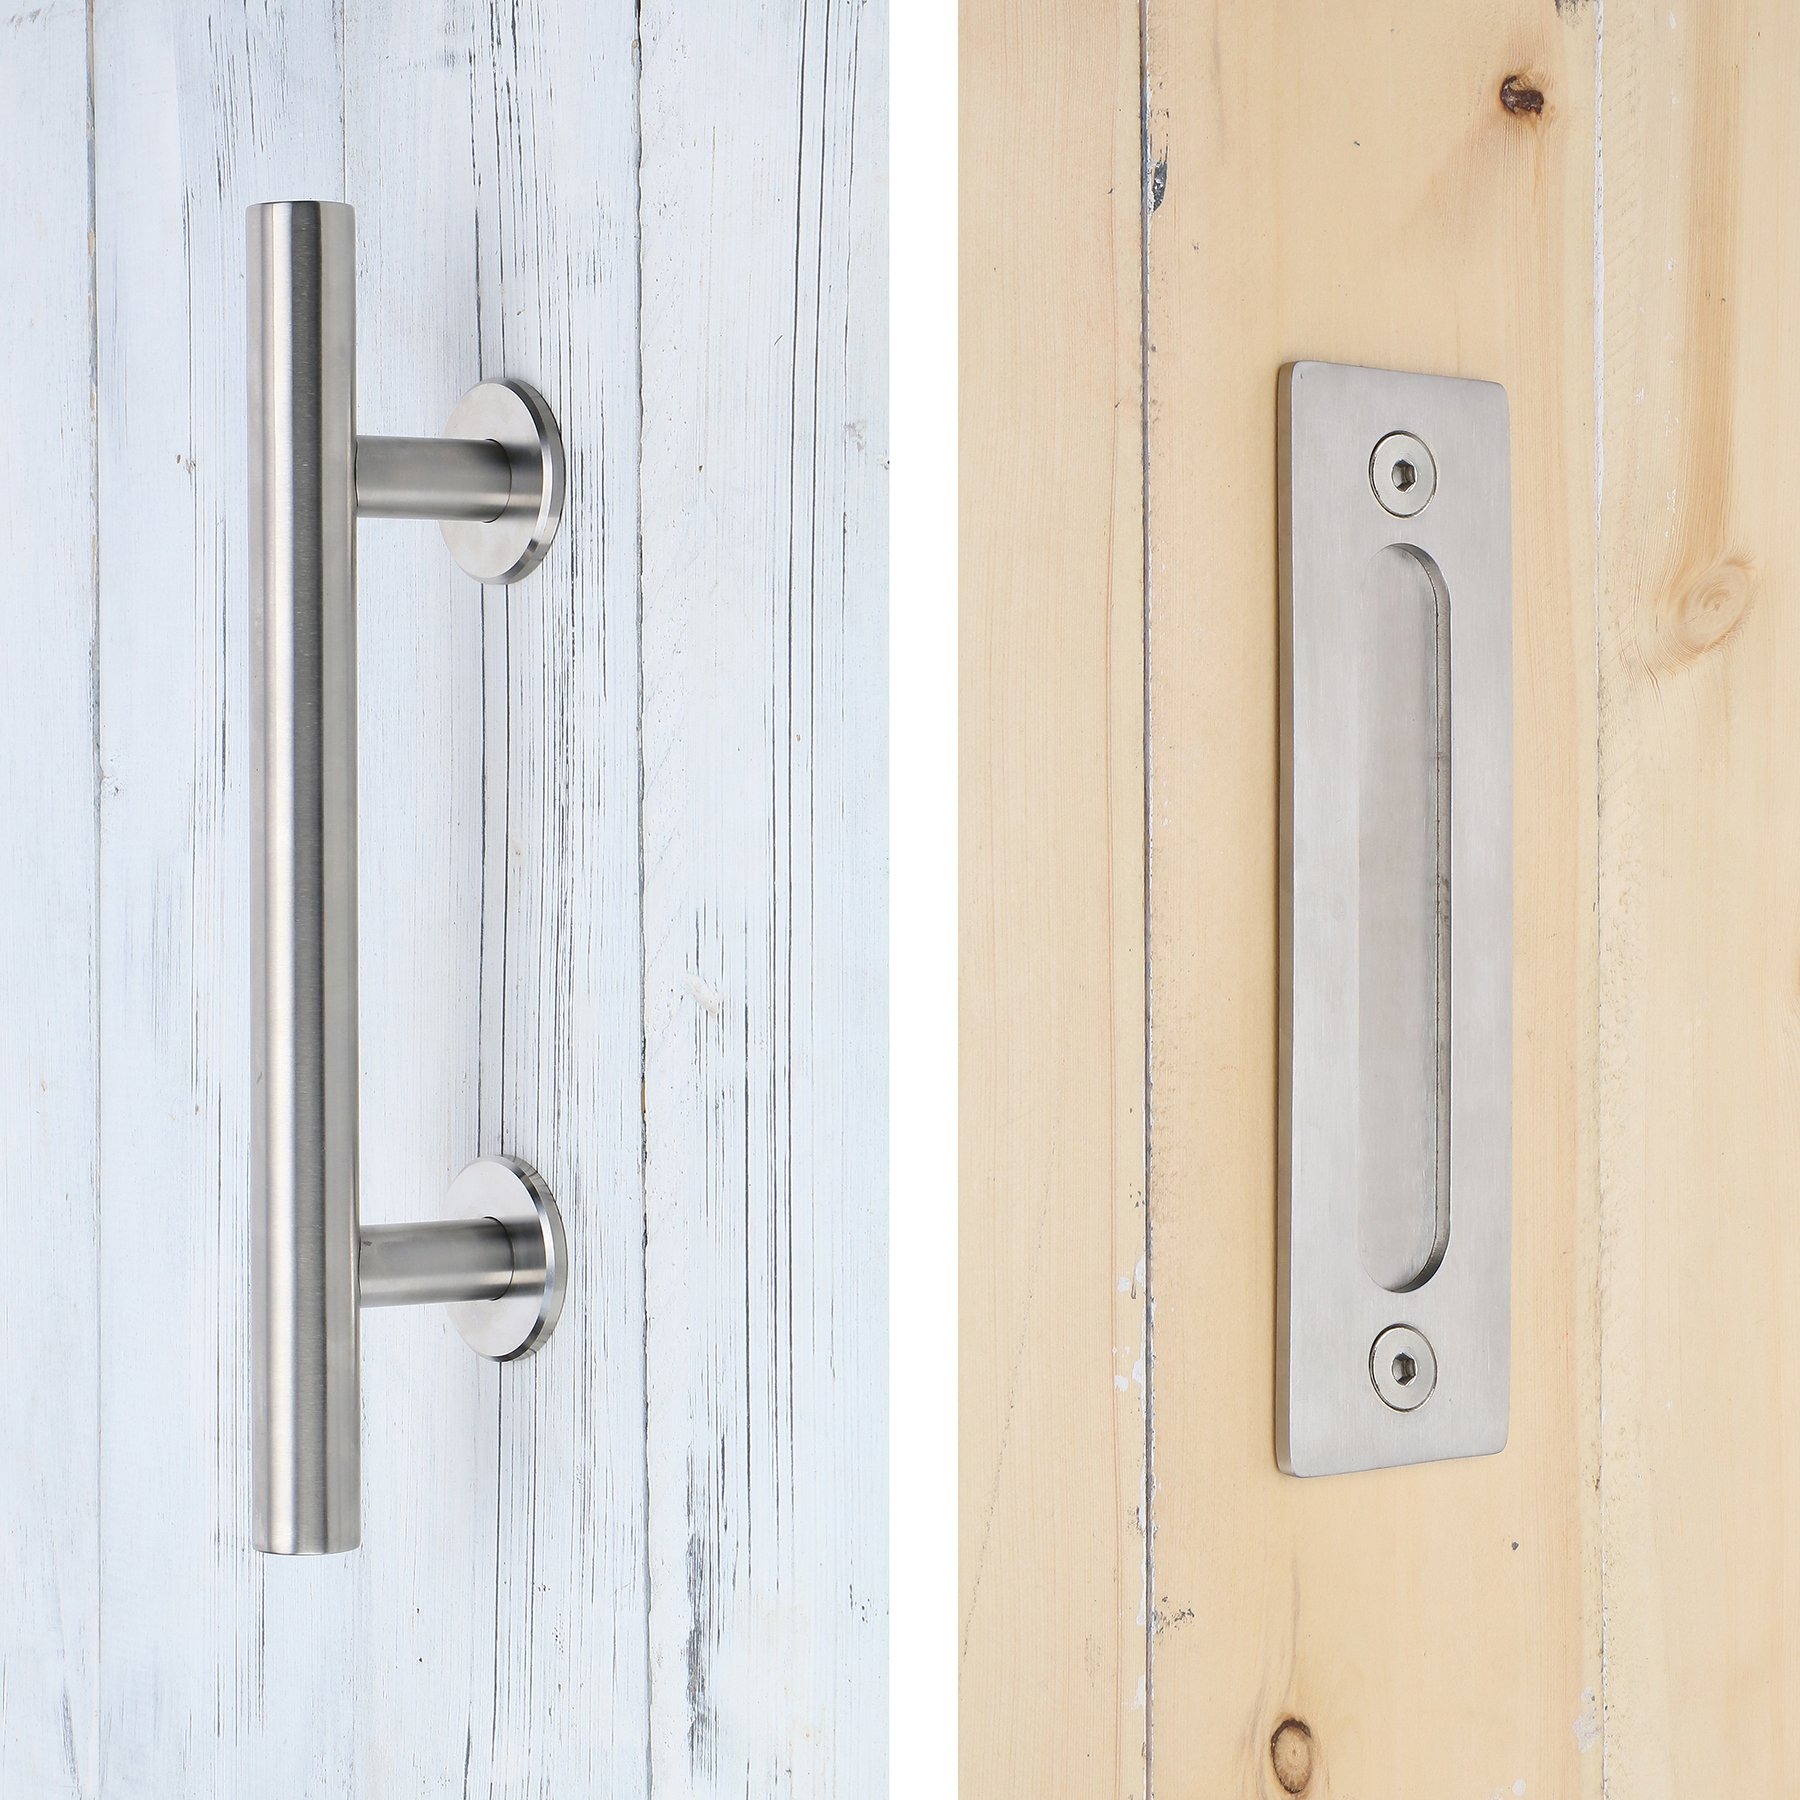 SMARTSTANDARD SHH0801STAINLESS Heavy Duty Large Rustic Flush and Pull Barn Door Handle, 12'', Stainless Steel, Simple and Easy to Install